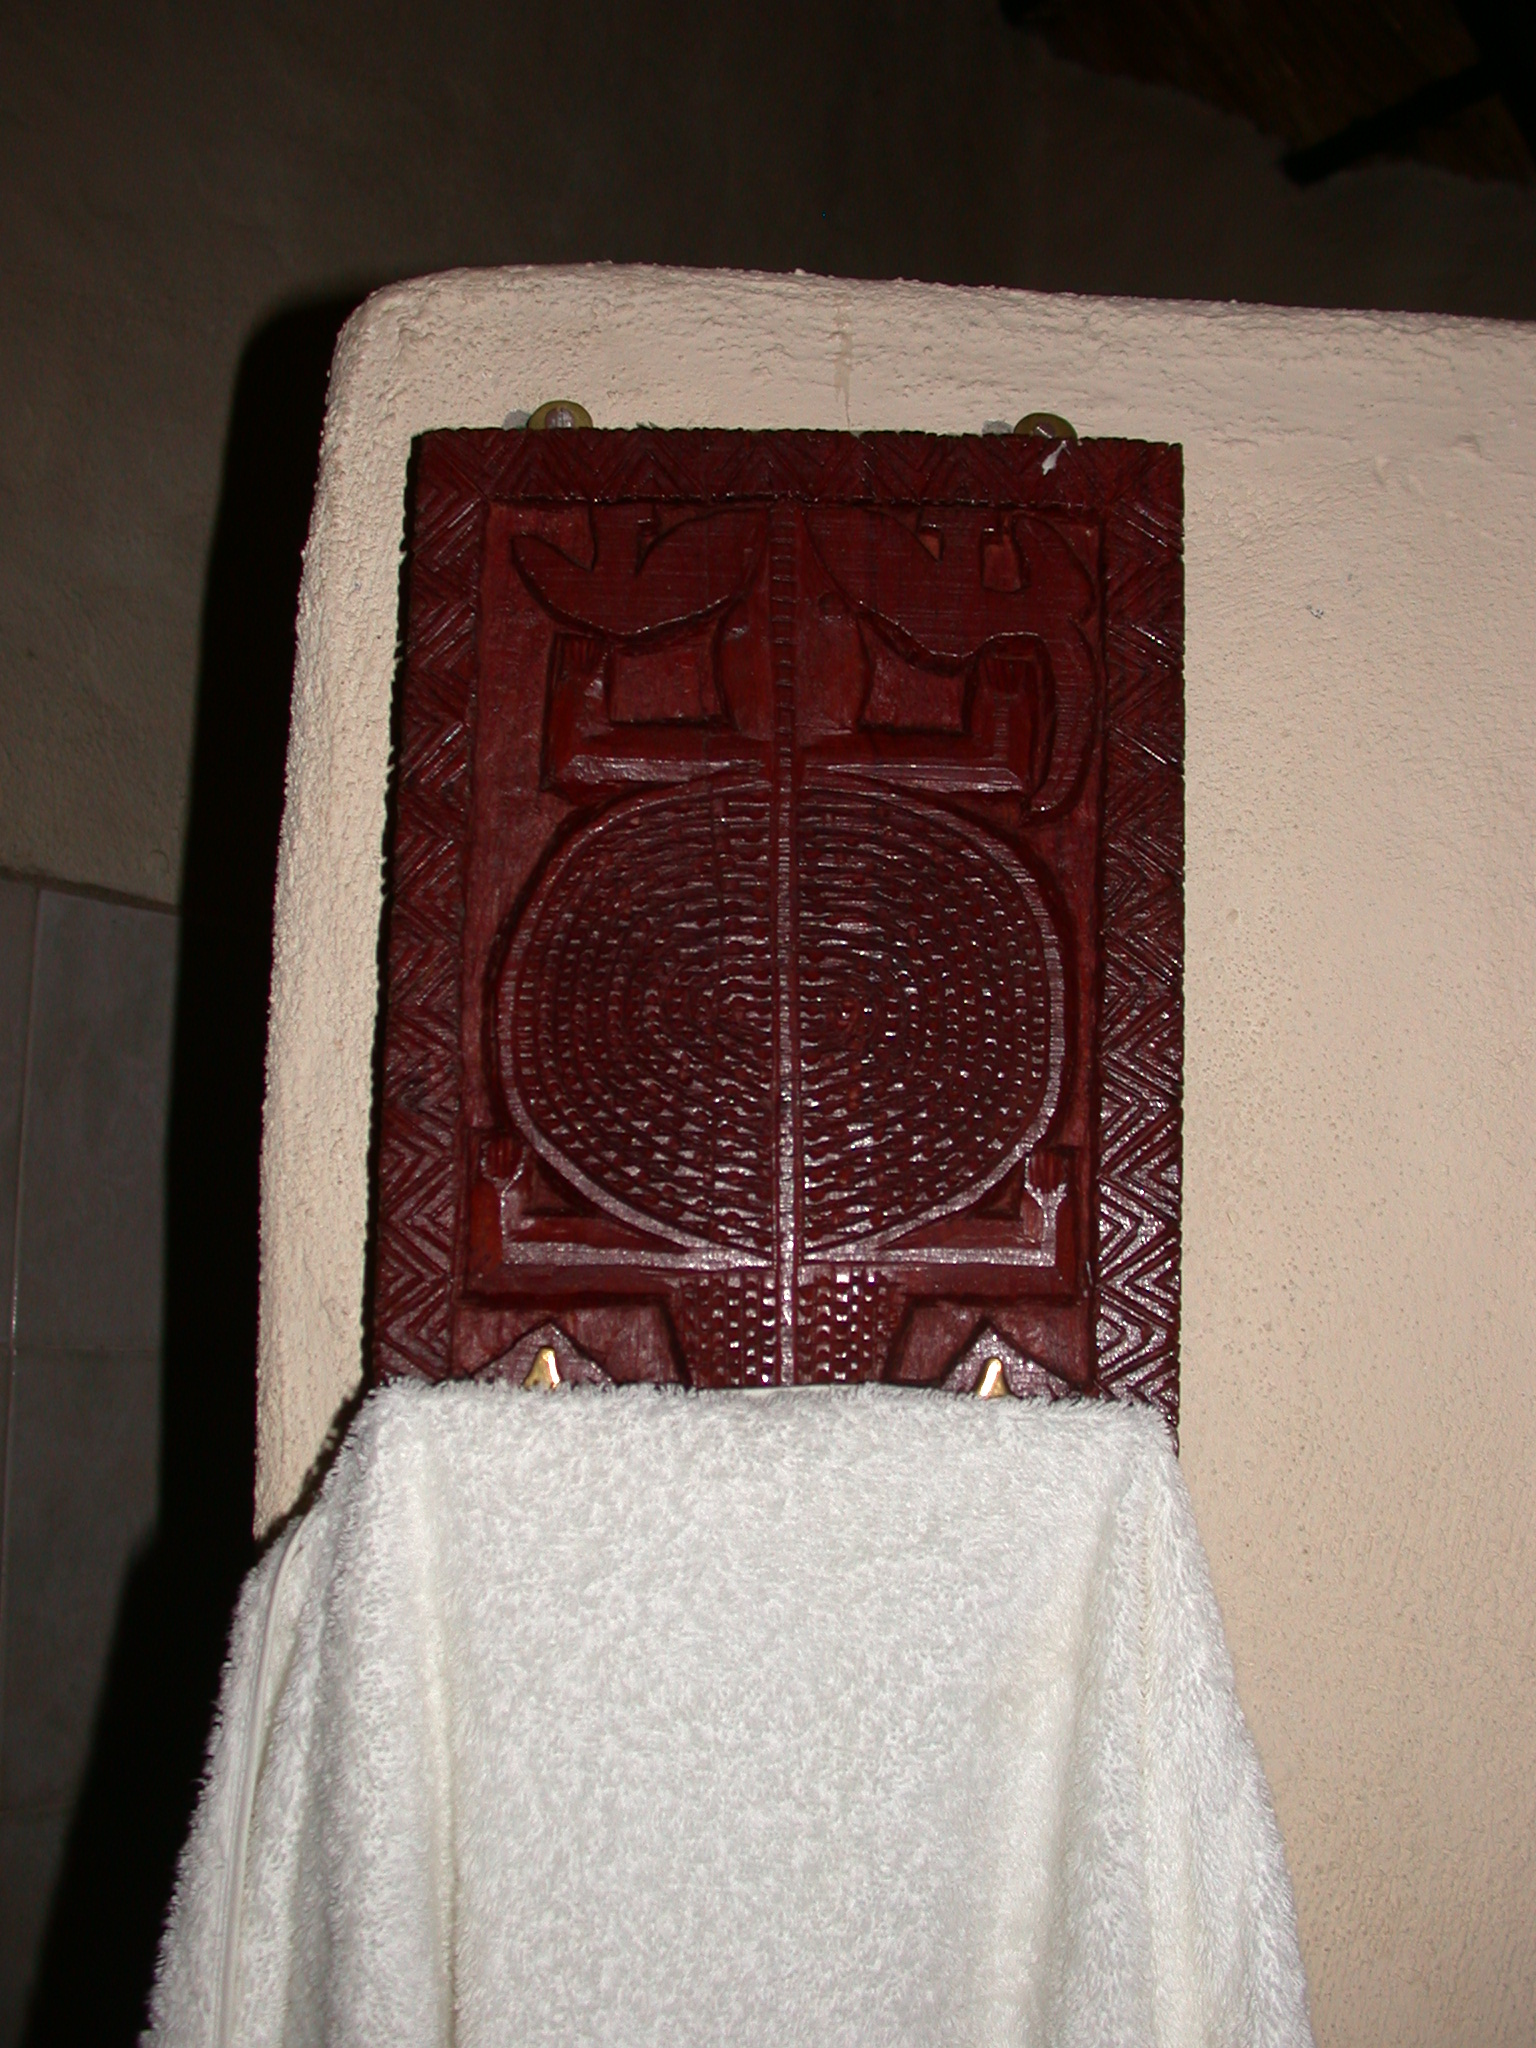 Towel Rack in Bathroom of My Suite at the Ancient City Lodge, Great Zimbabwe, Outside Masvingo, Zimbabwe